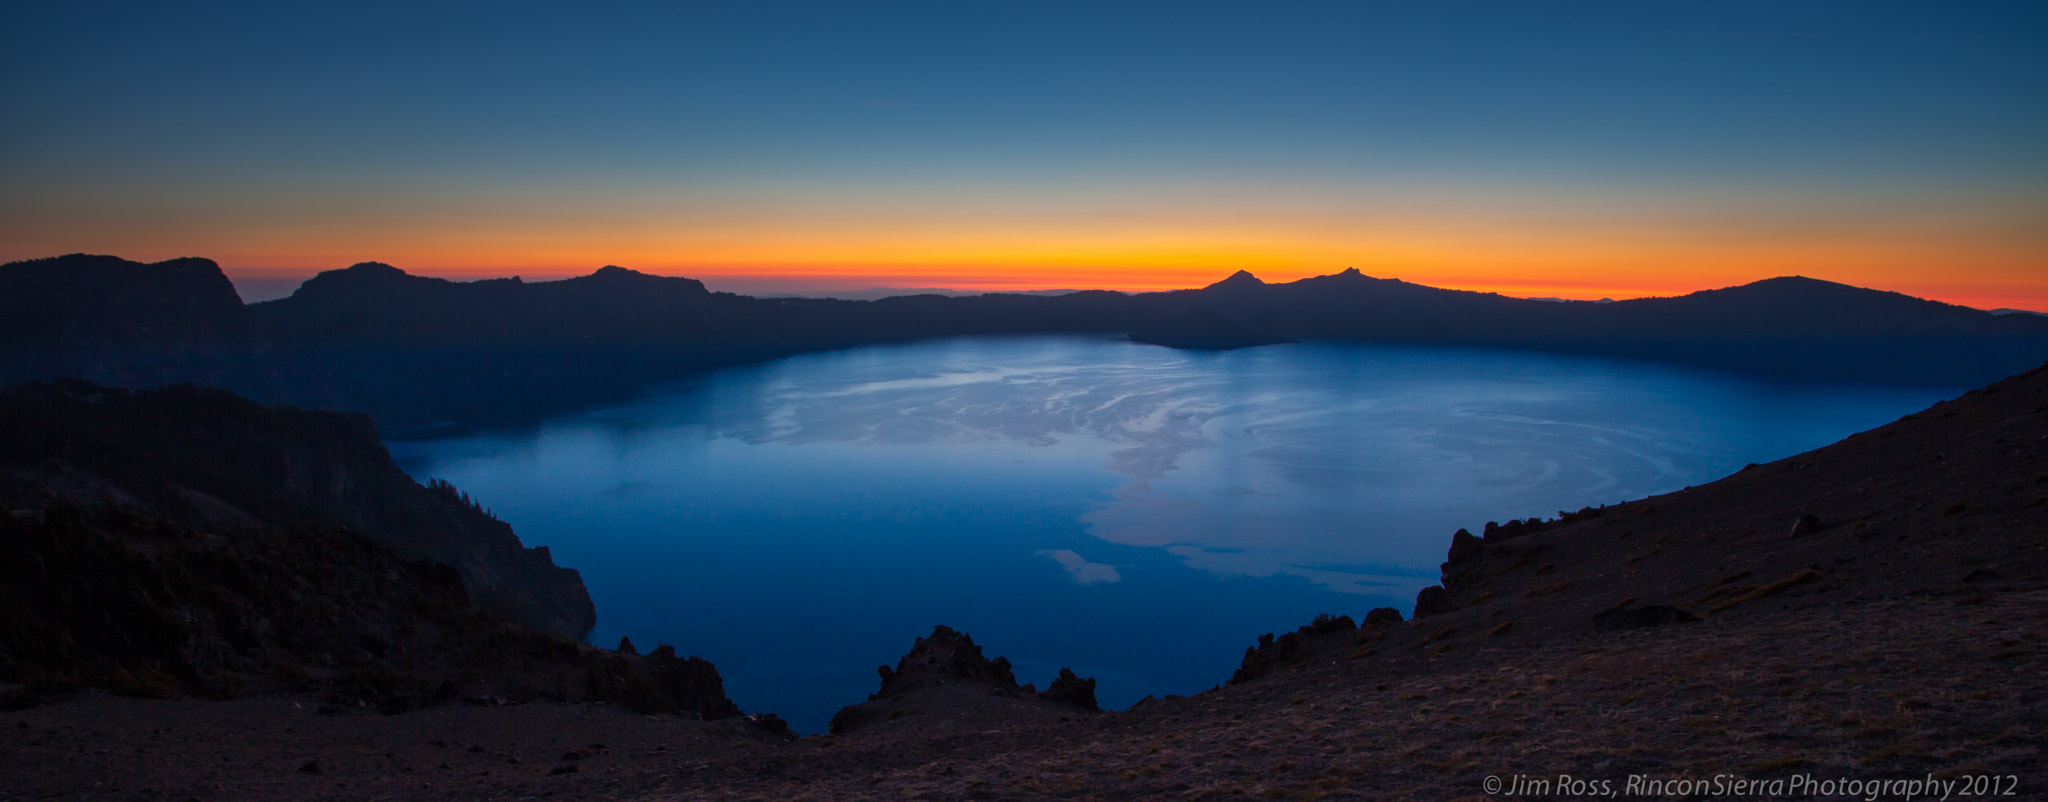 Photograph Swirling Winds On Crater Lake  by Jim Ross on 500px